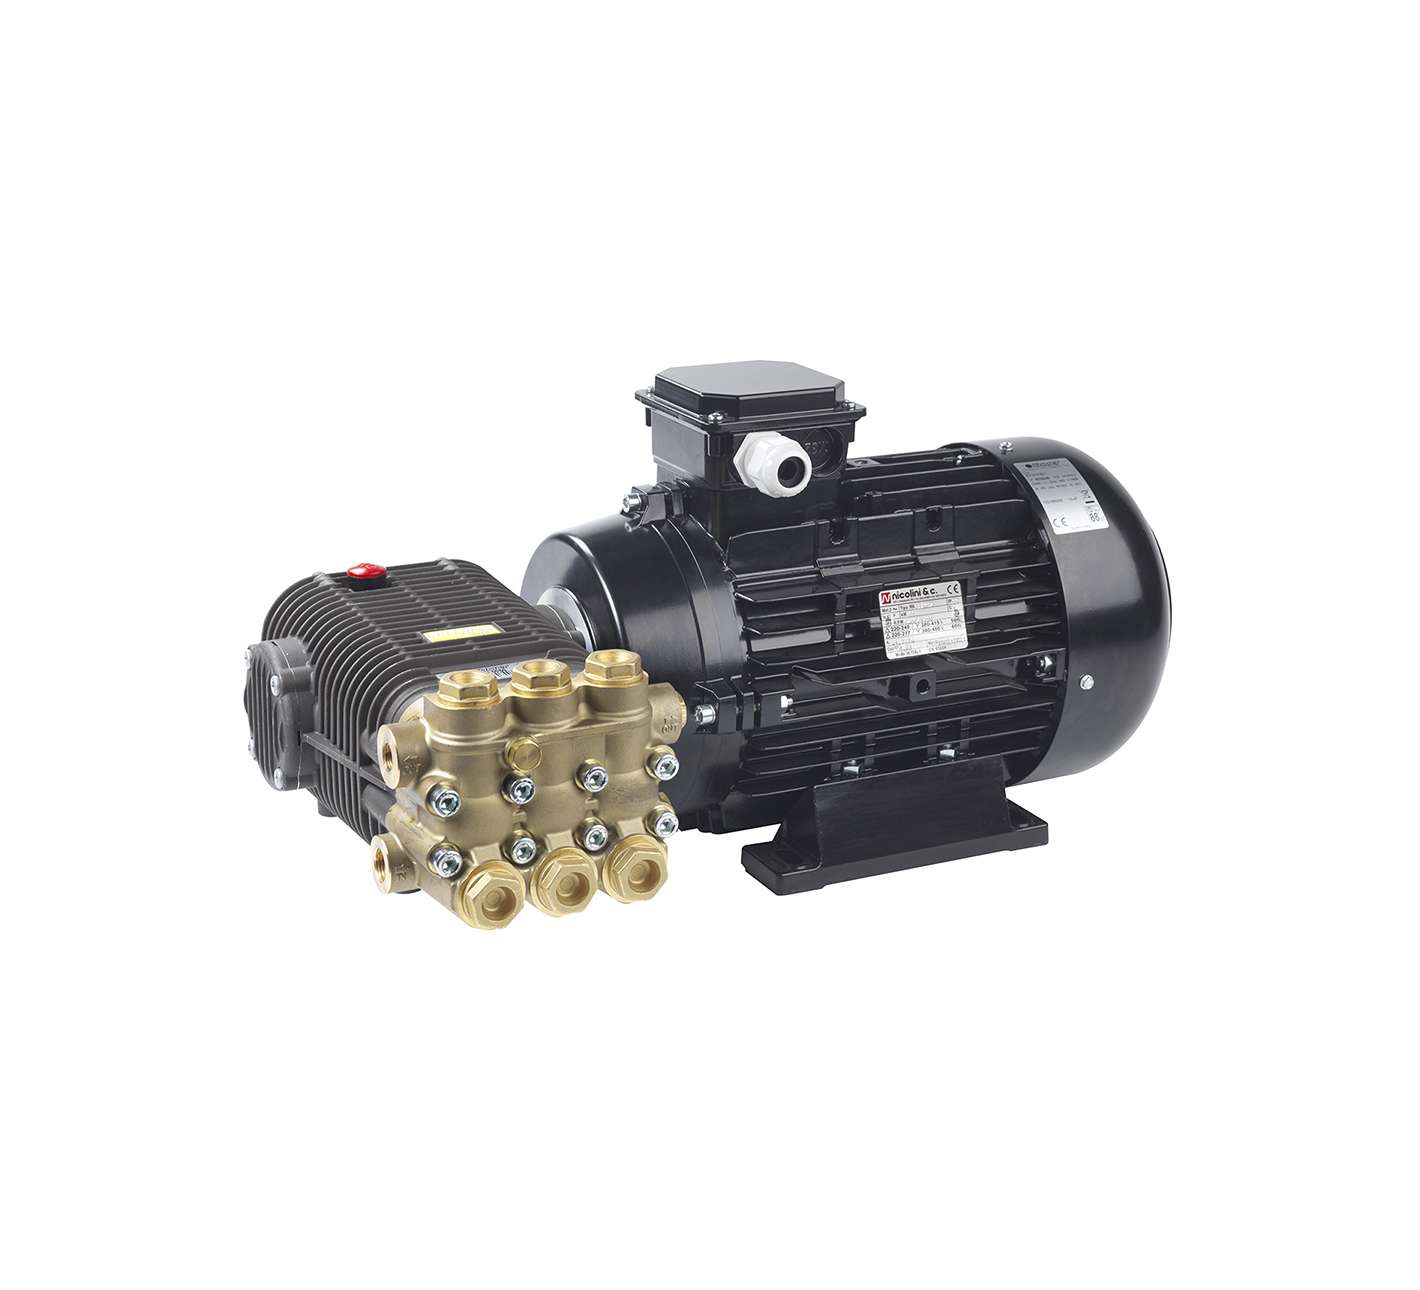 MTP TW Comet Industrial Pumps